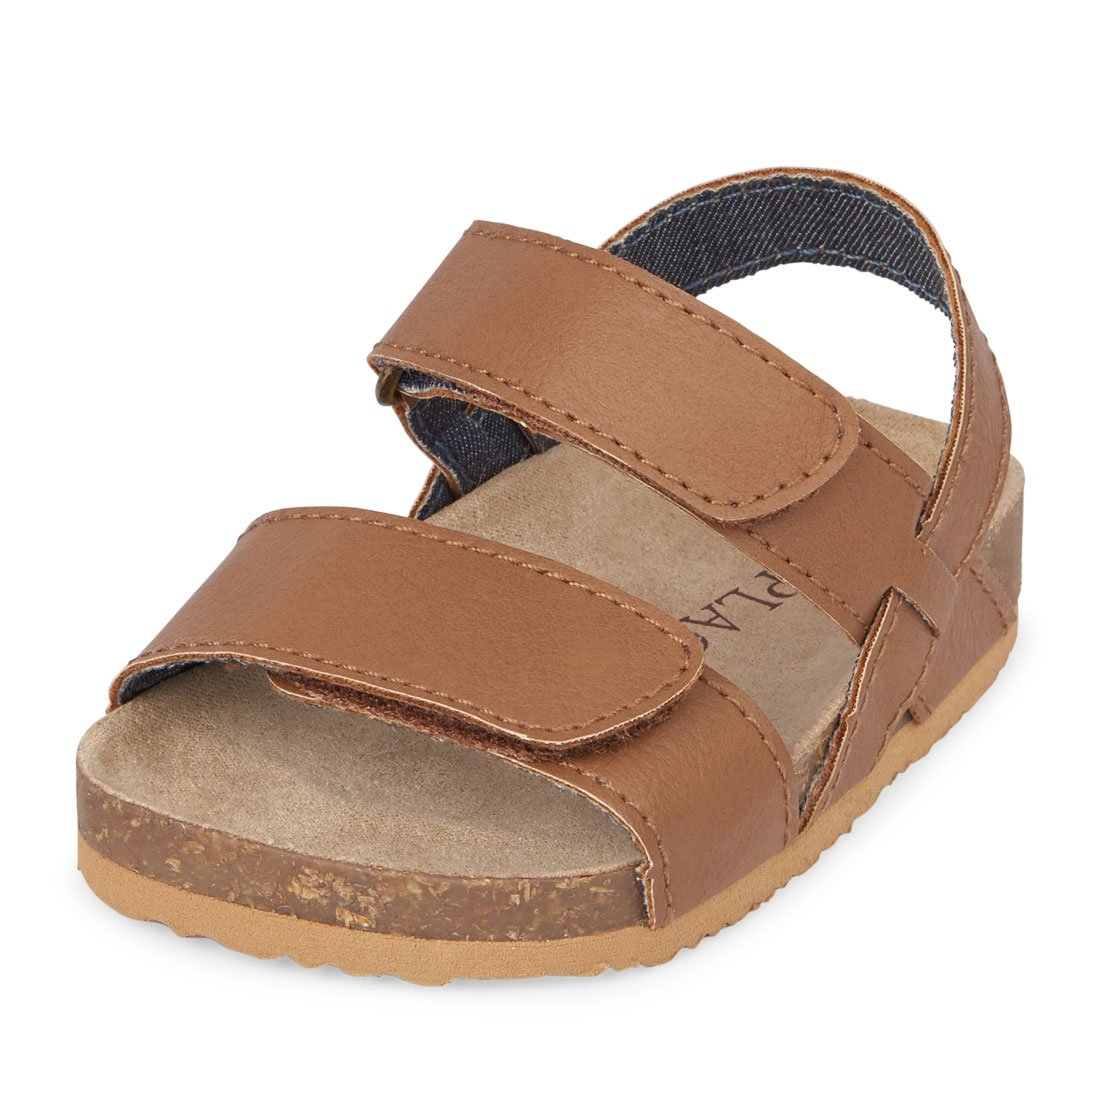 The Childrens Place Kids NBB Scout Sandal